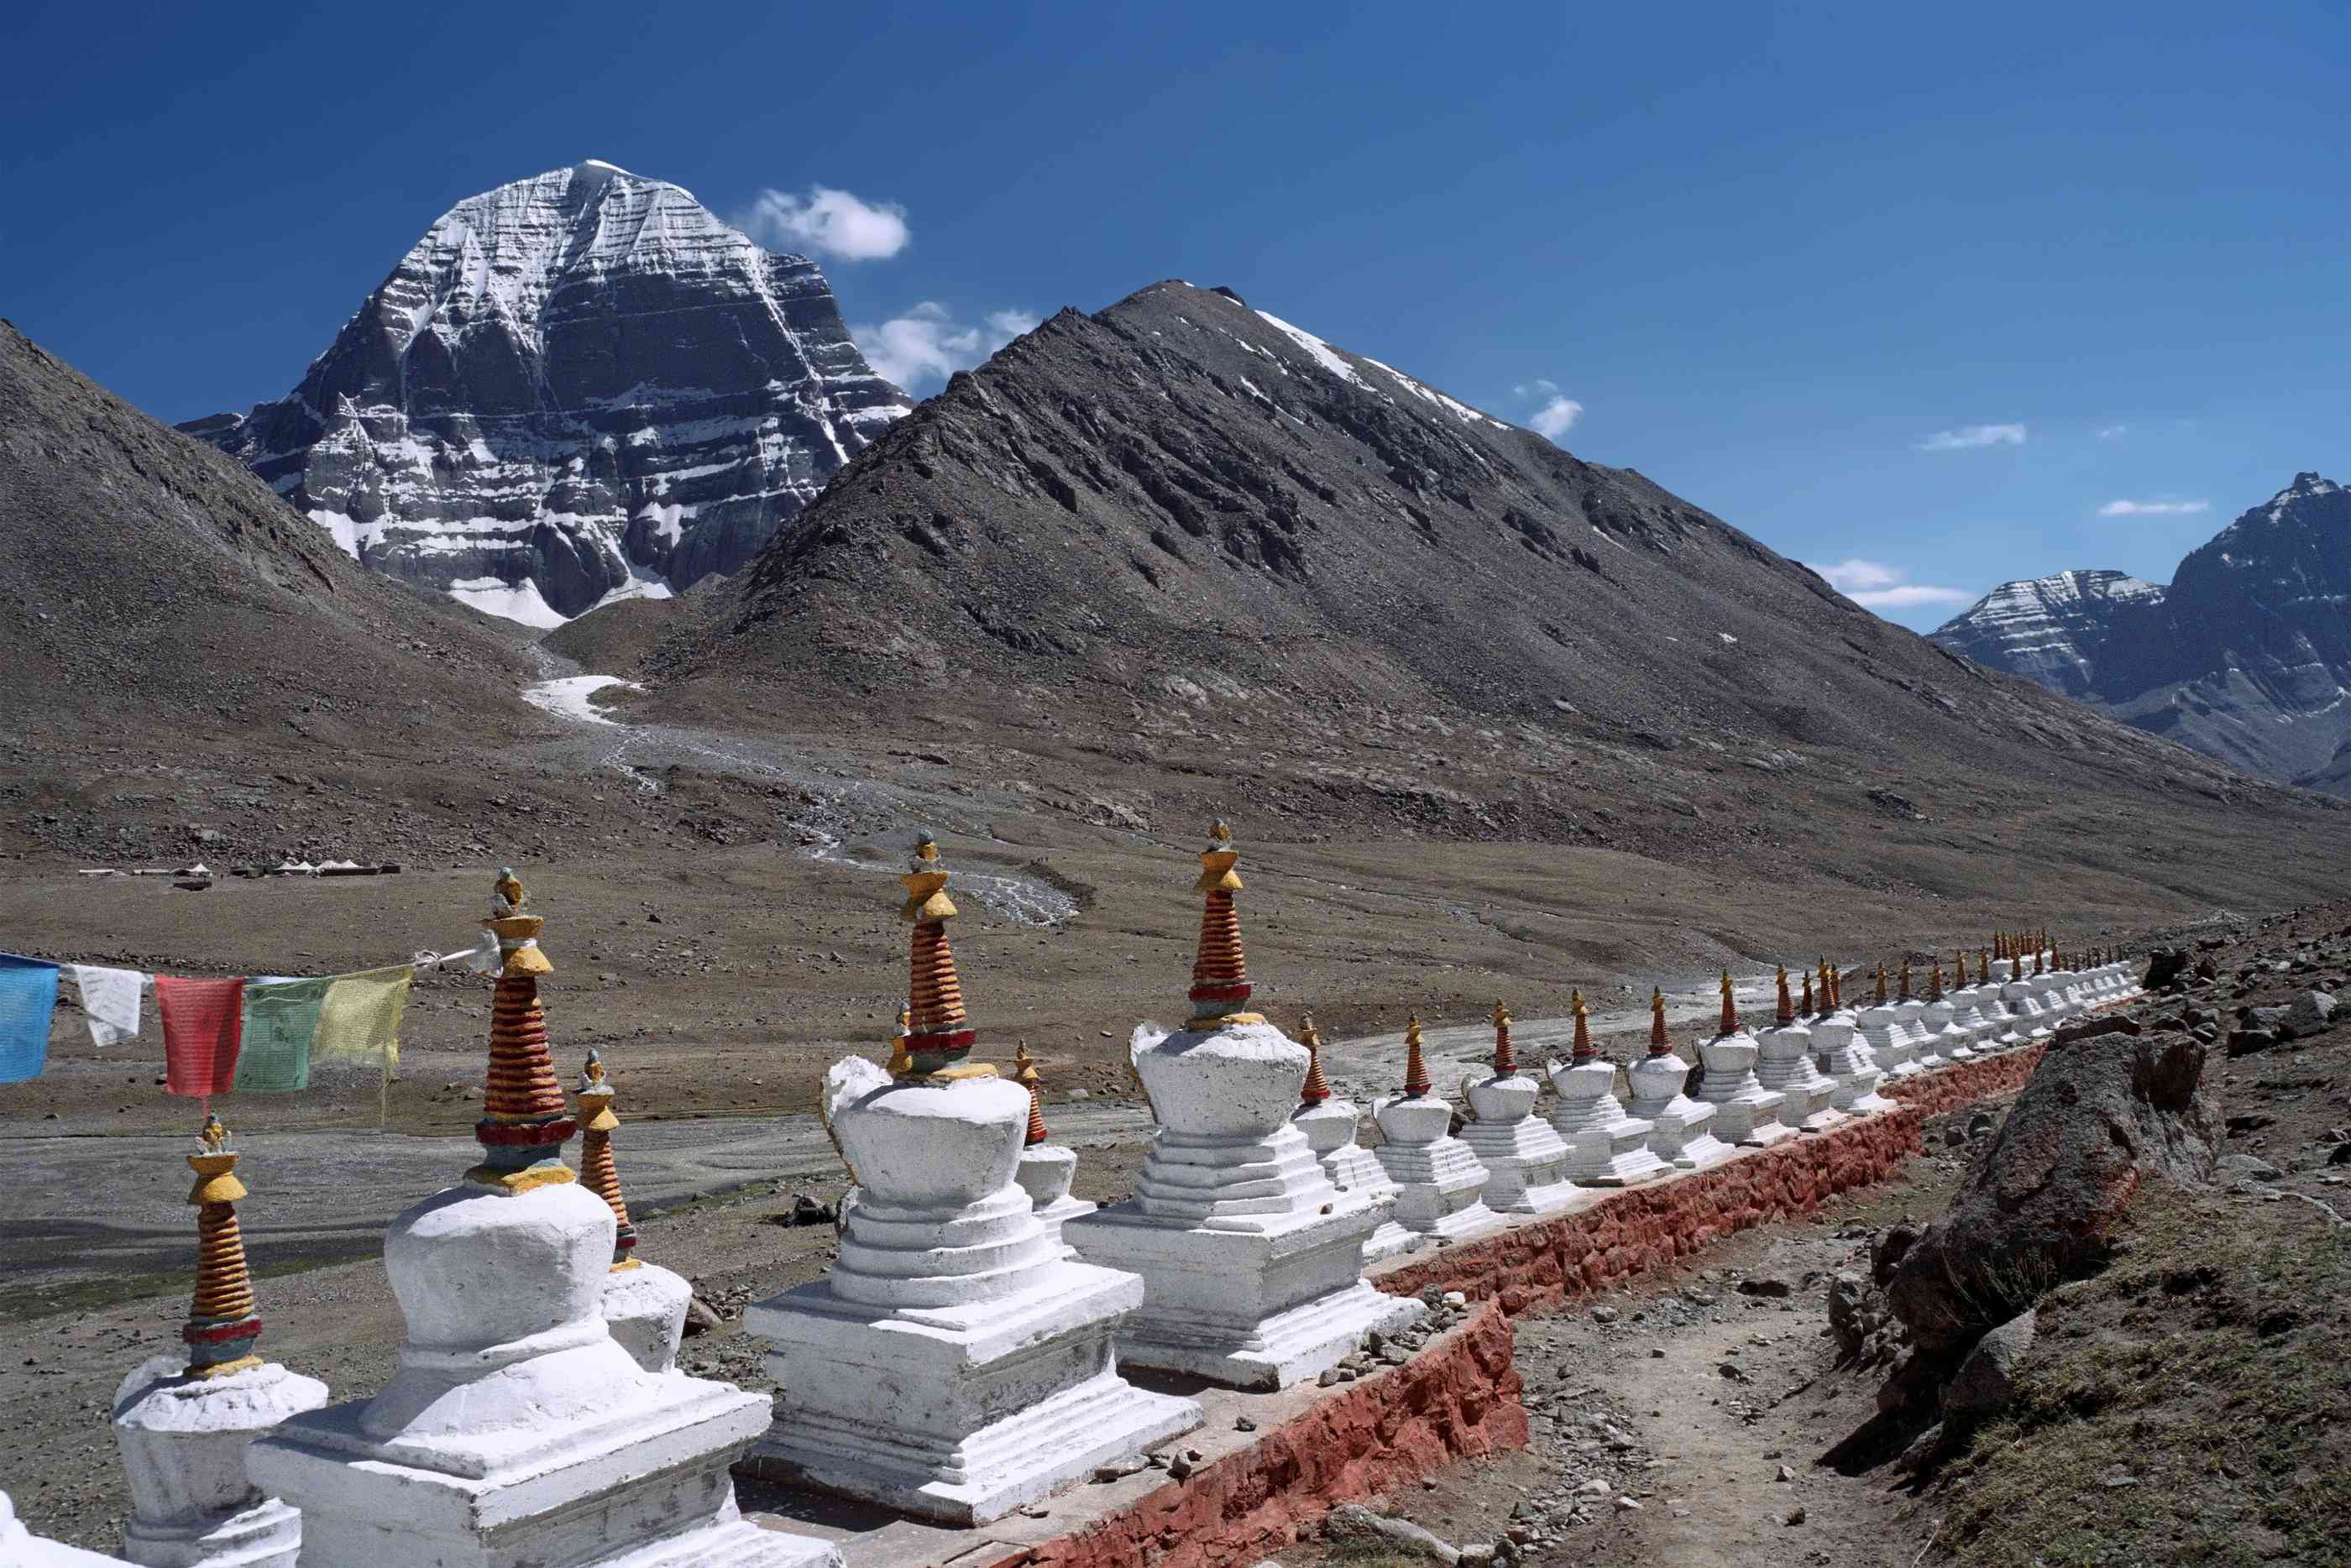 Trekking around Mt Kailash in Tibet